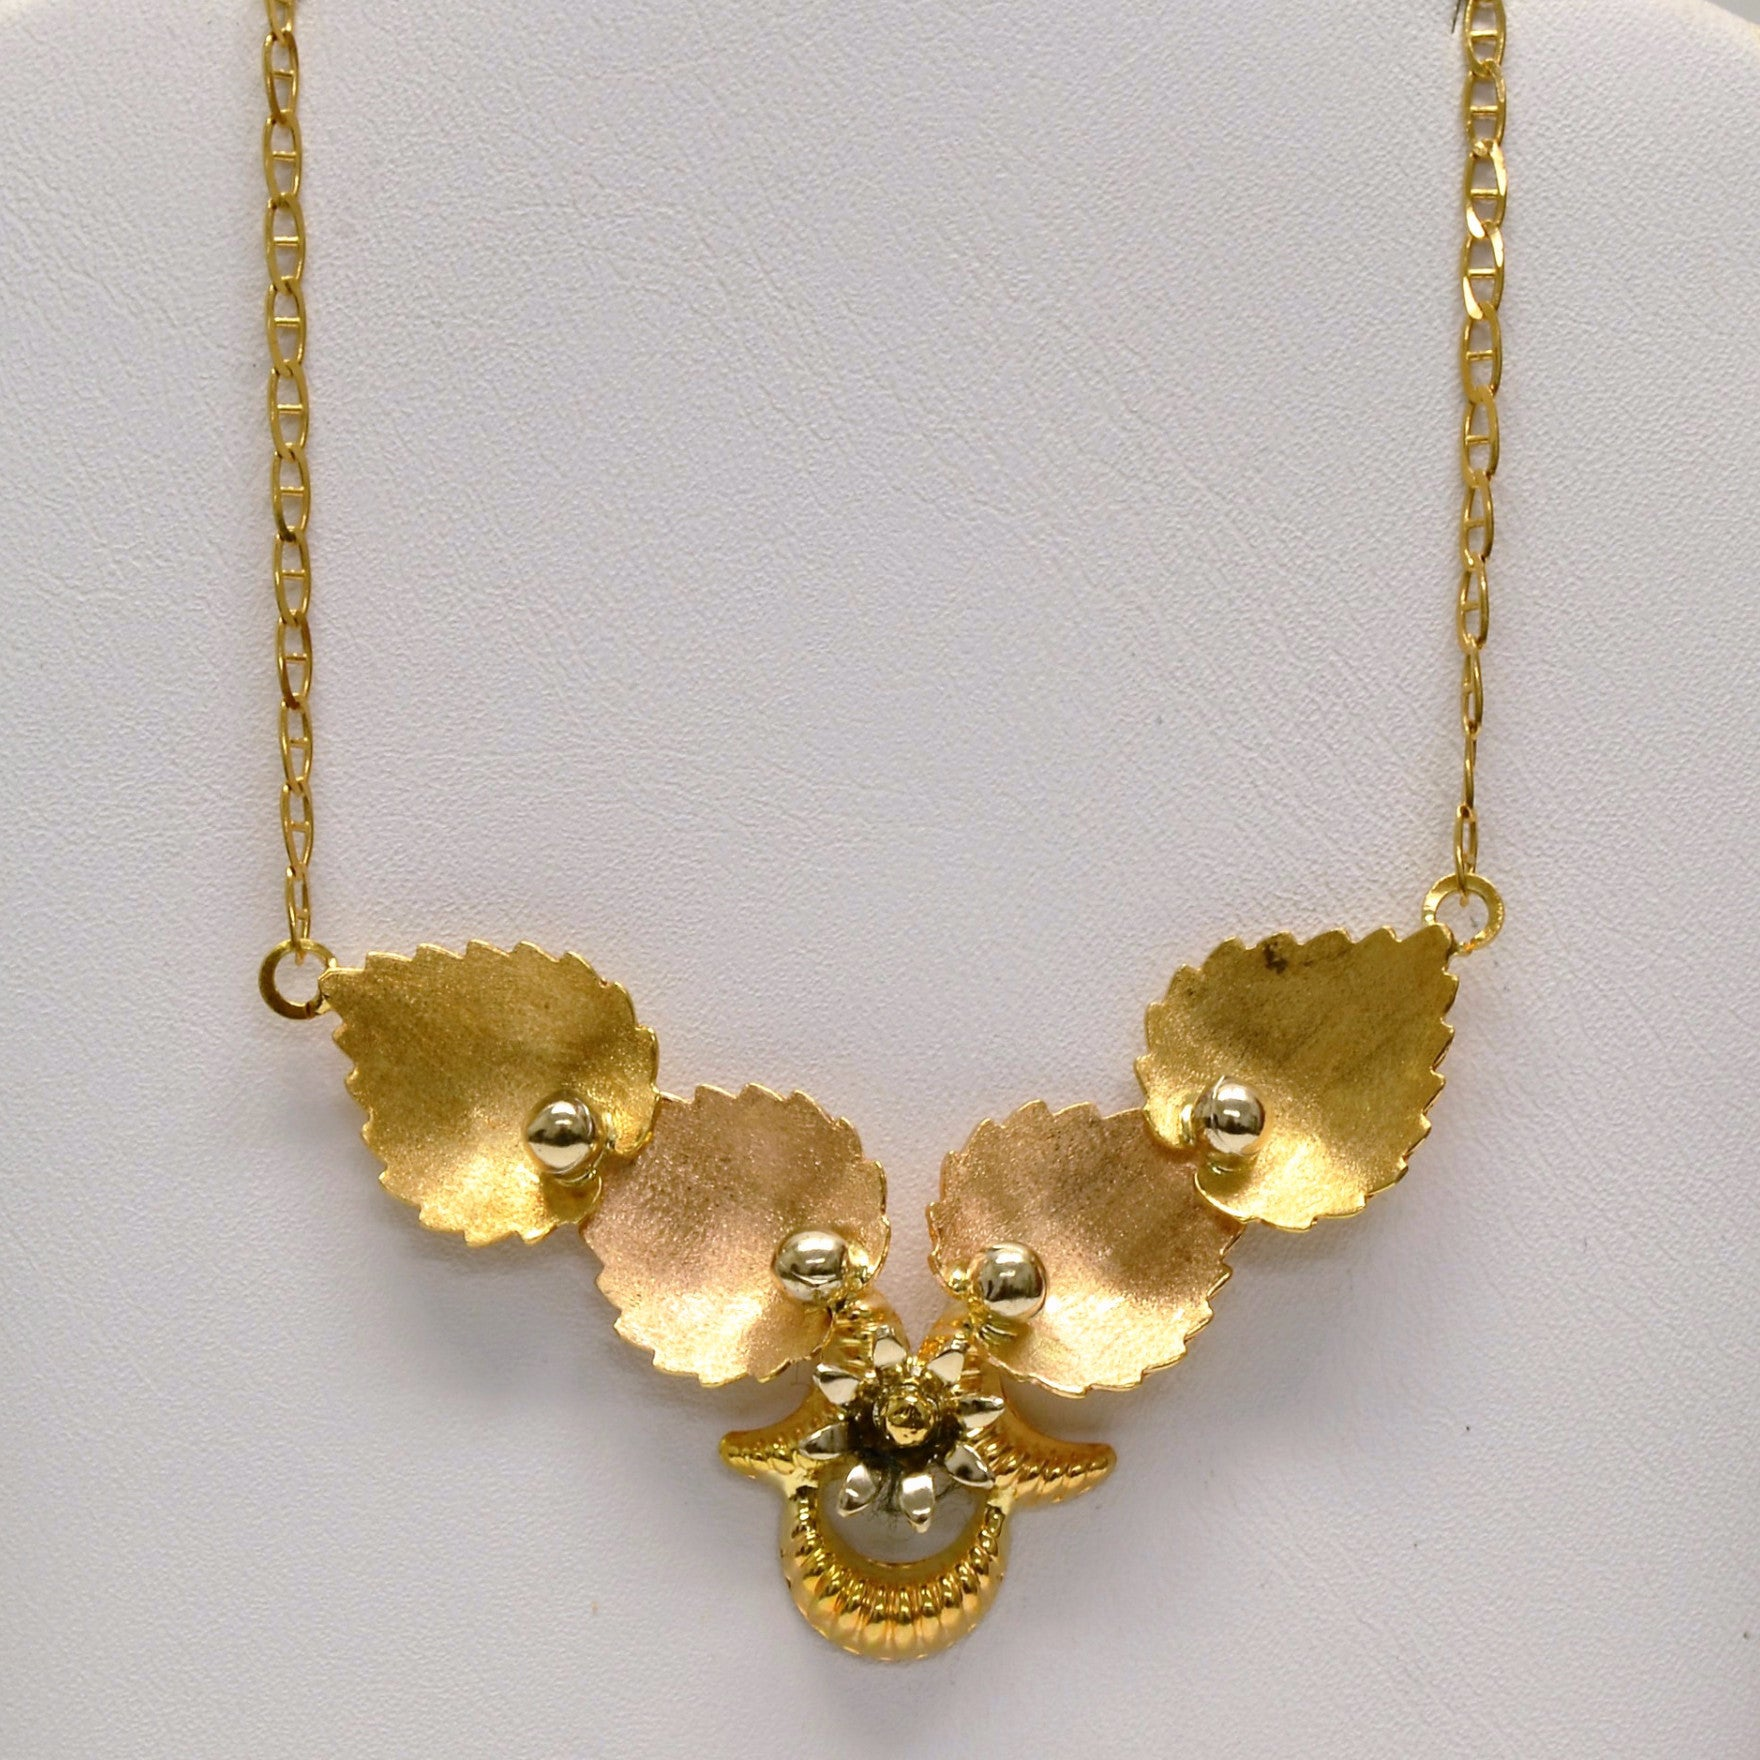 Tri Tone Leaf Necklace & Earrings Set | 18"